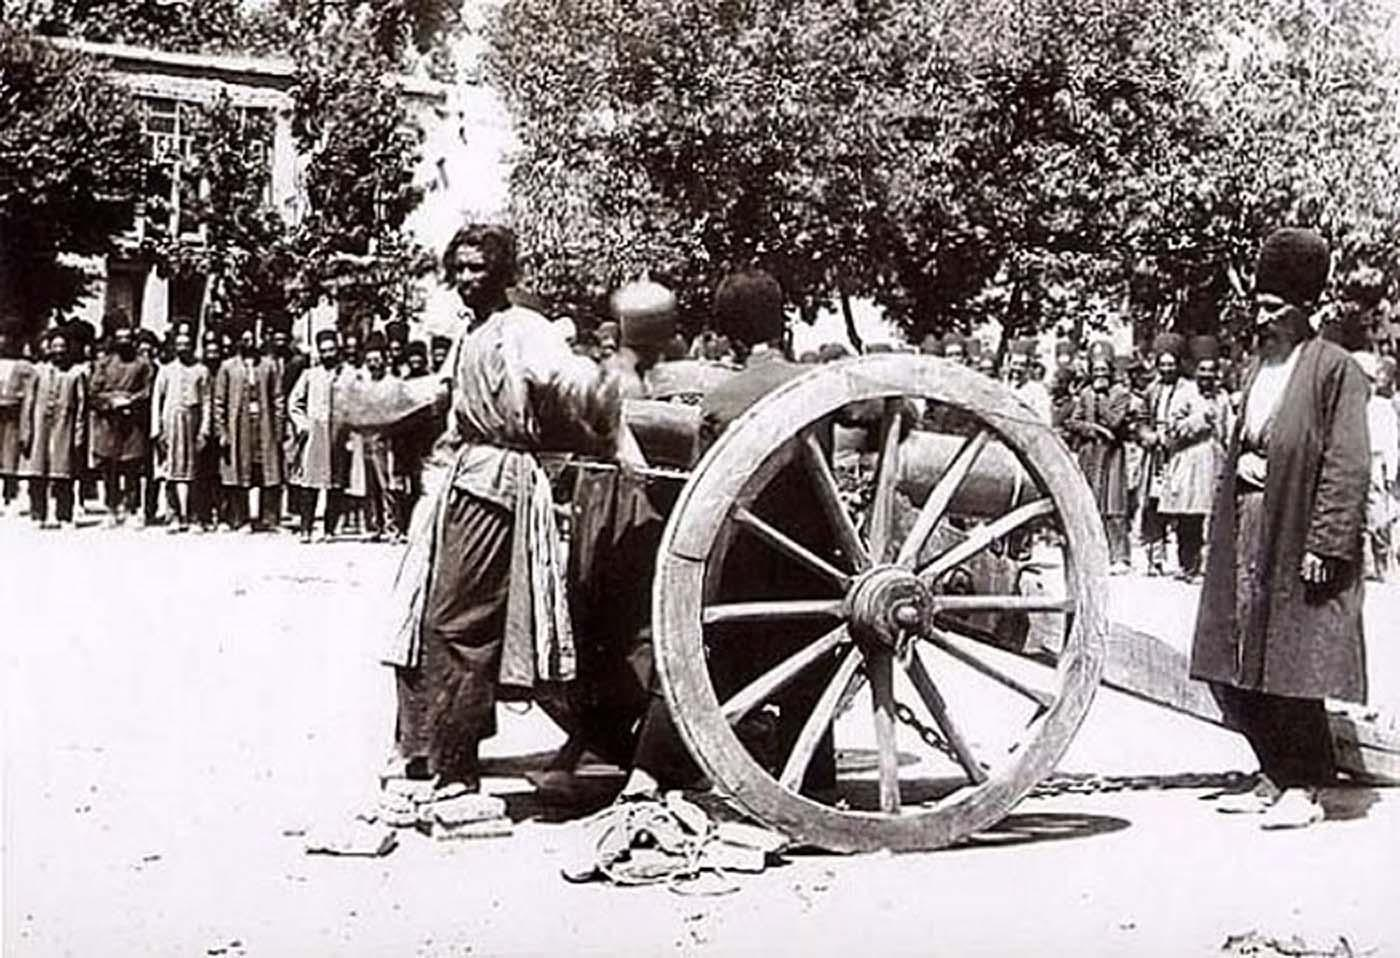 Execution by Cannon in Shiraz, Iran, Mid-Late 19th Century